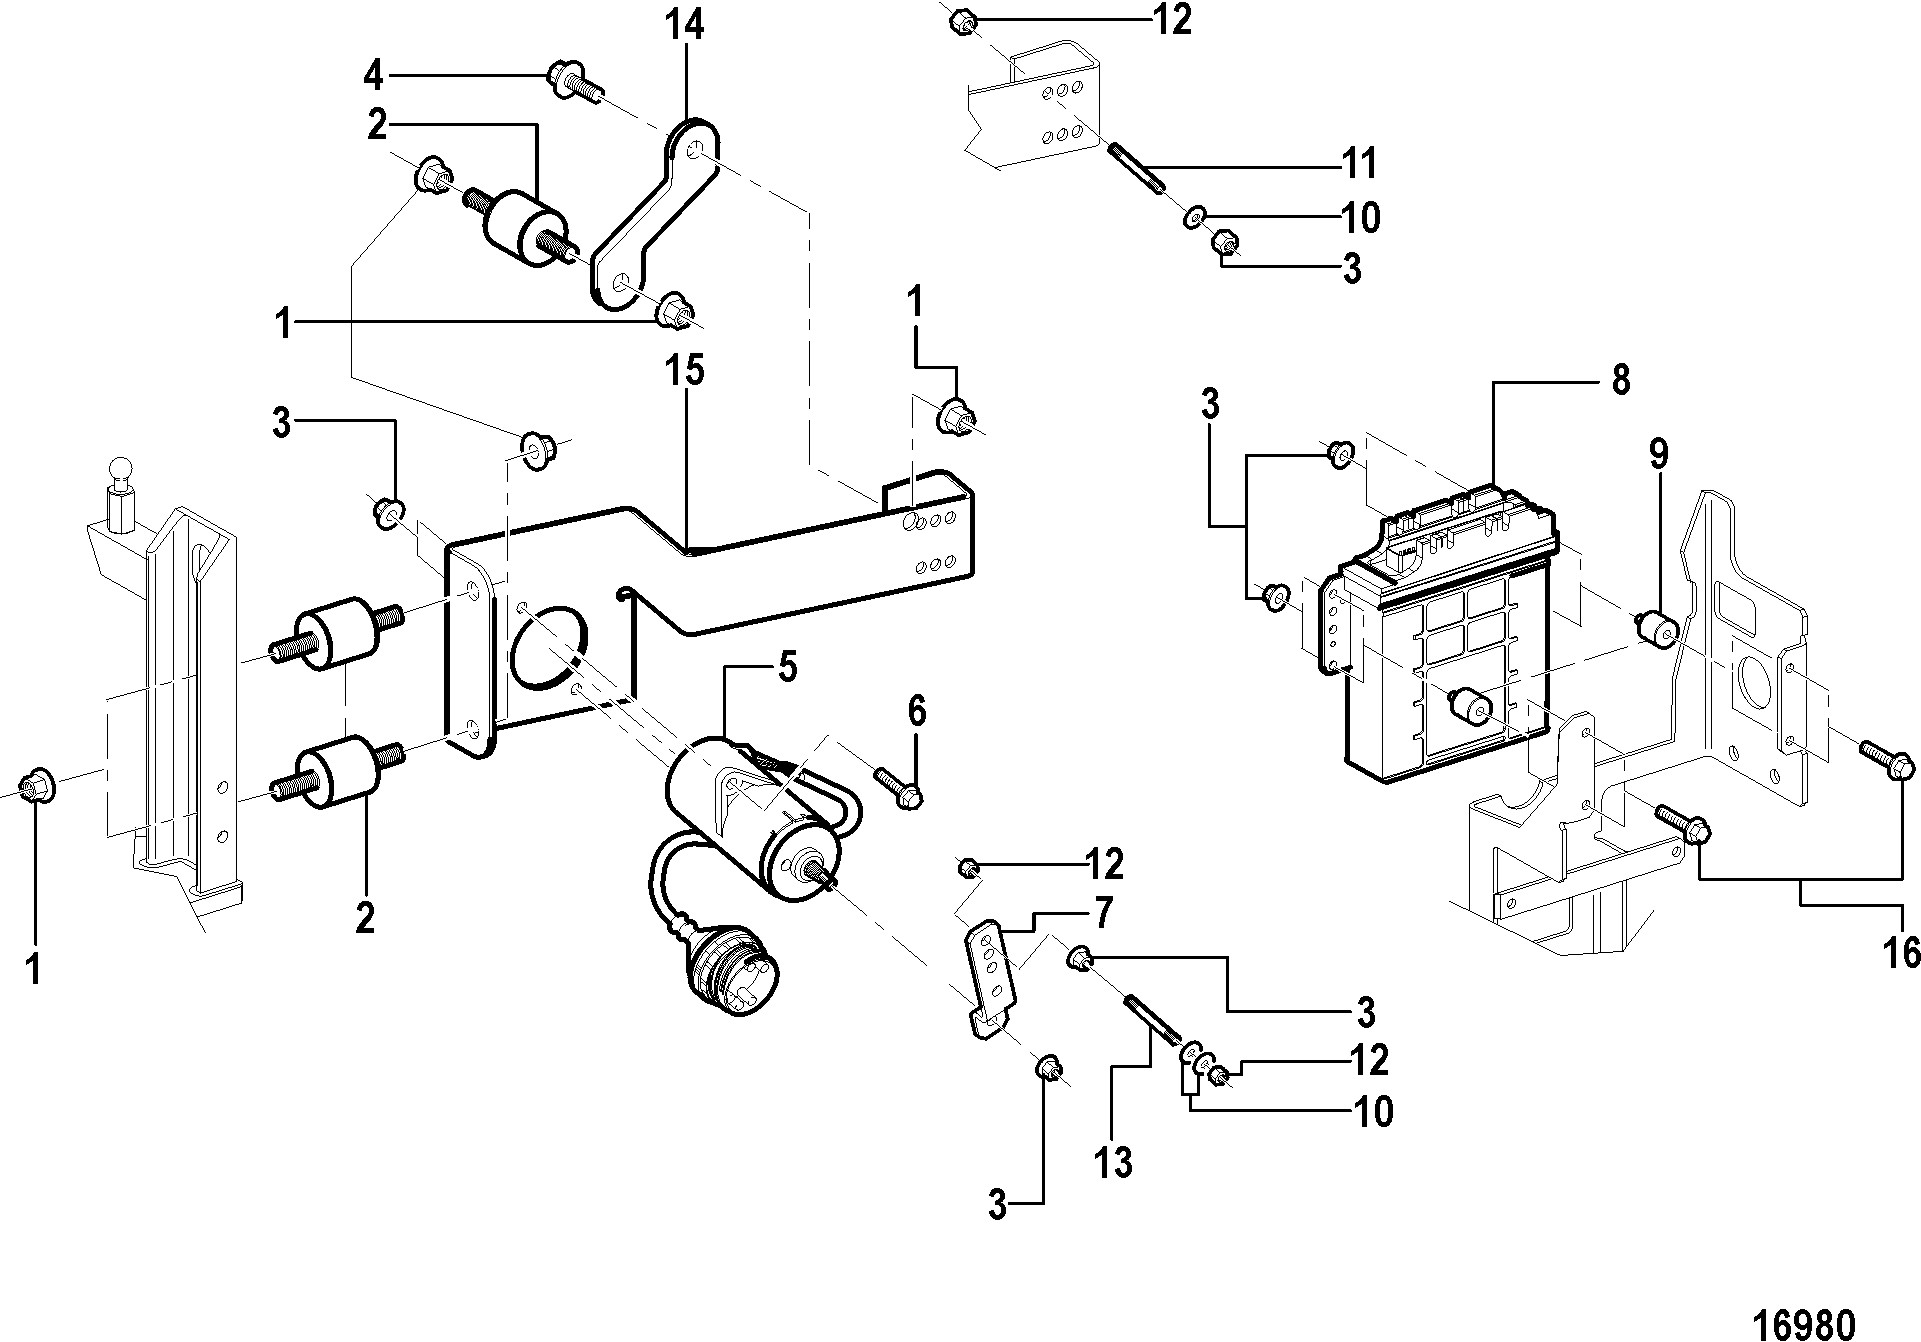 Mercruiser 170 Engine Diagram N N N N